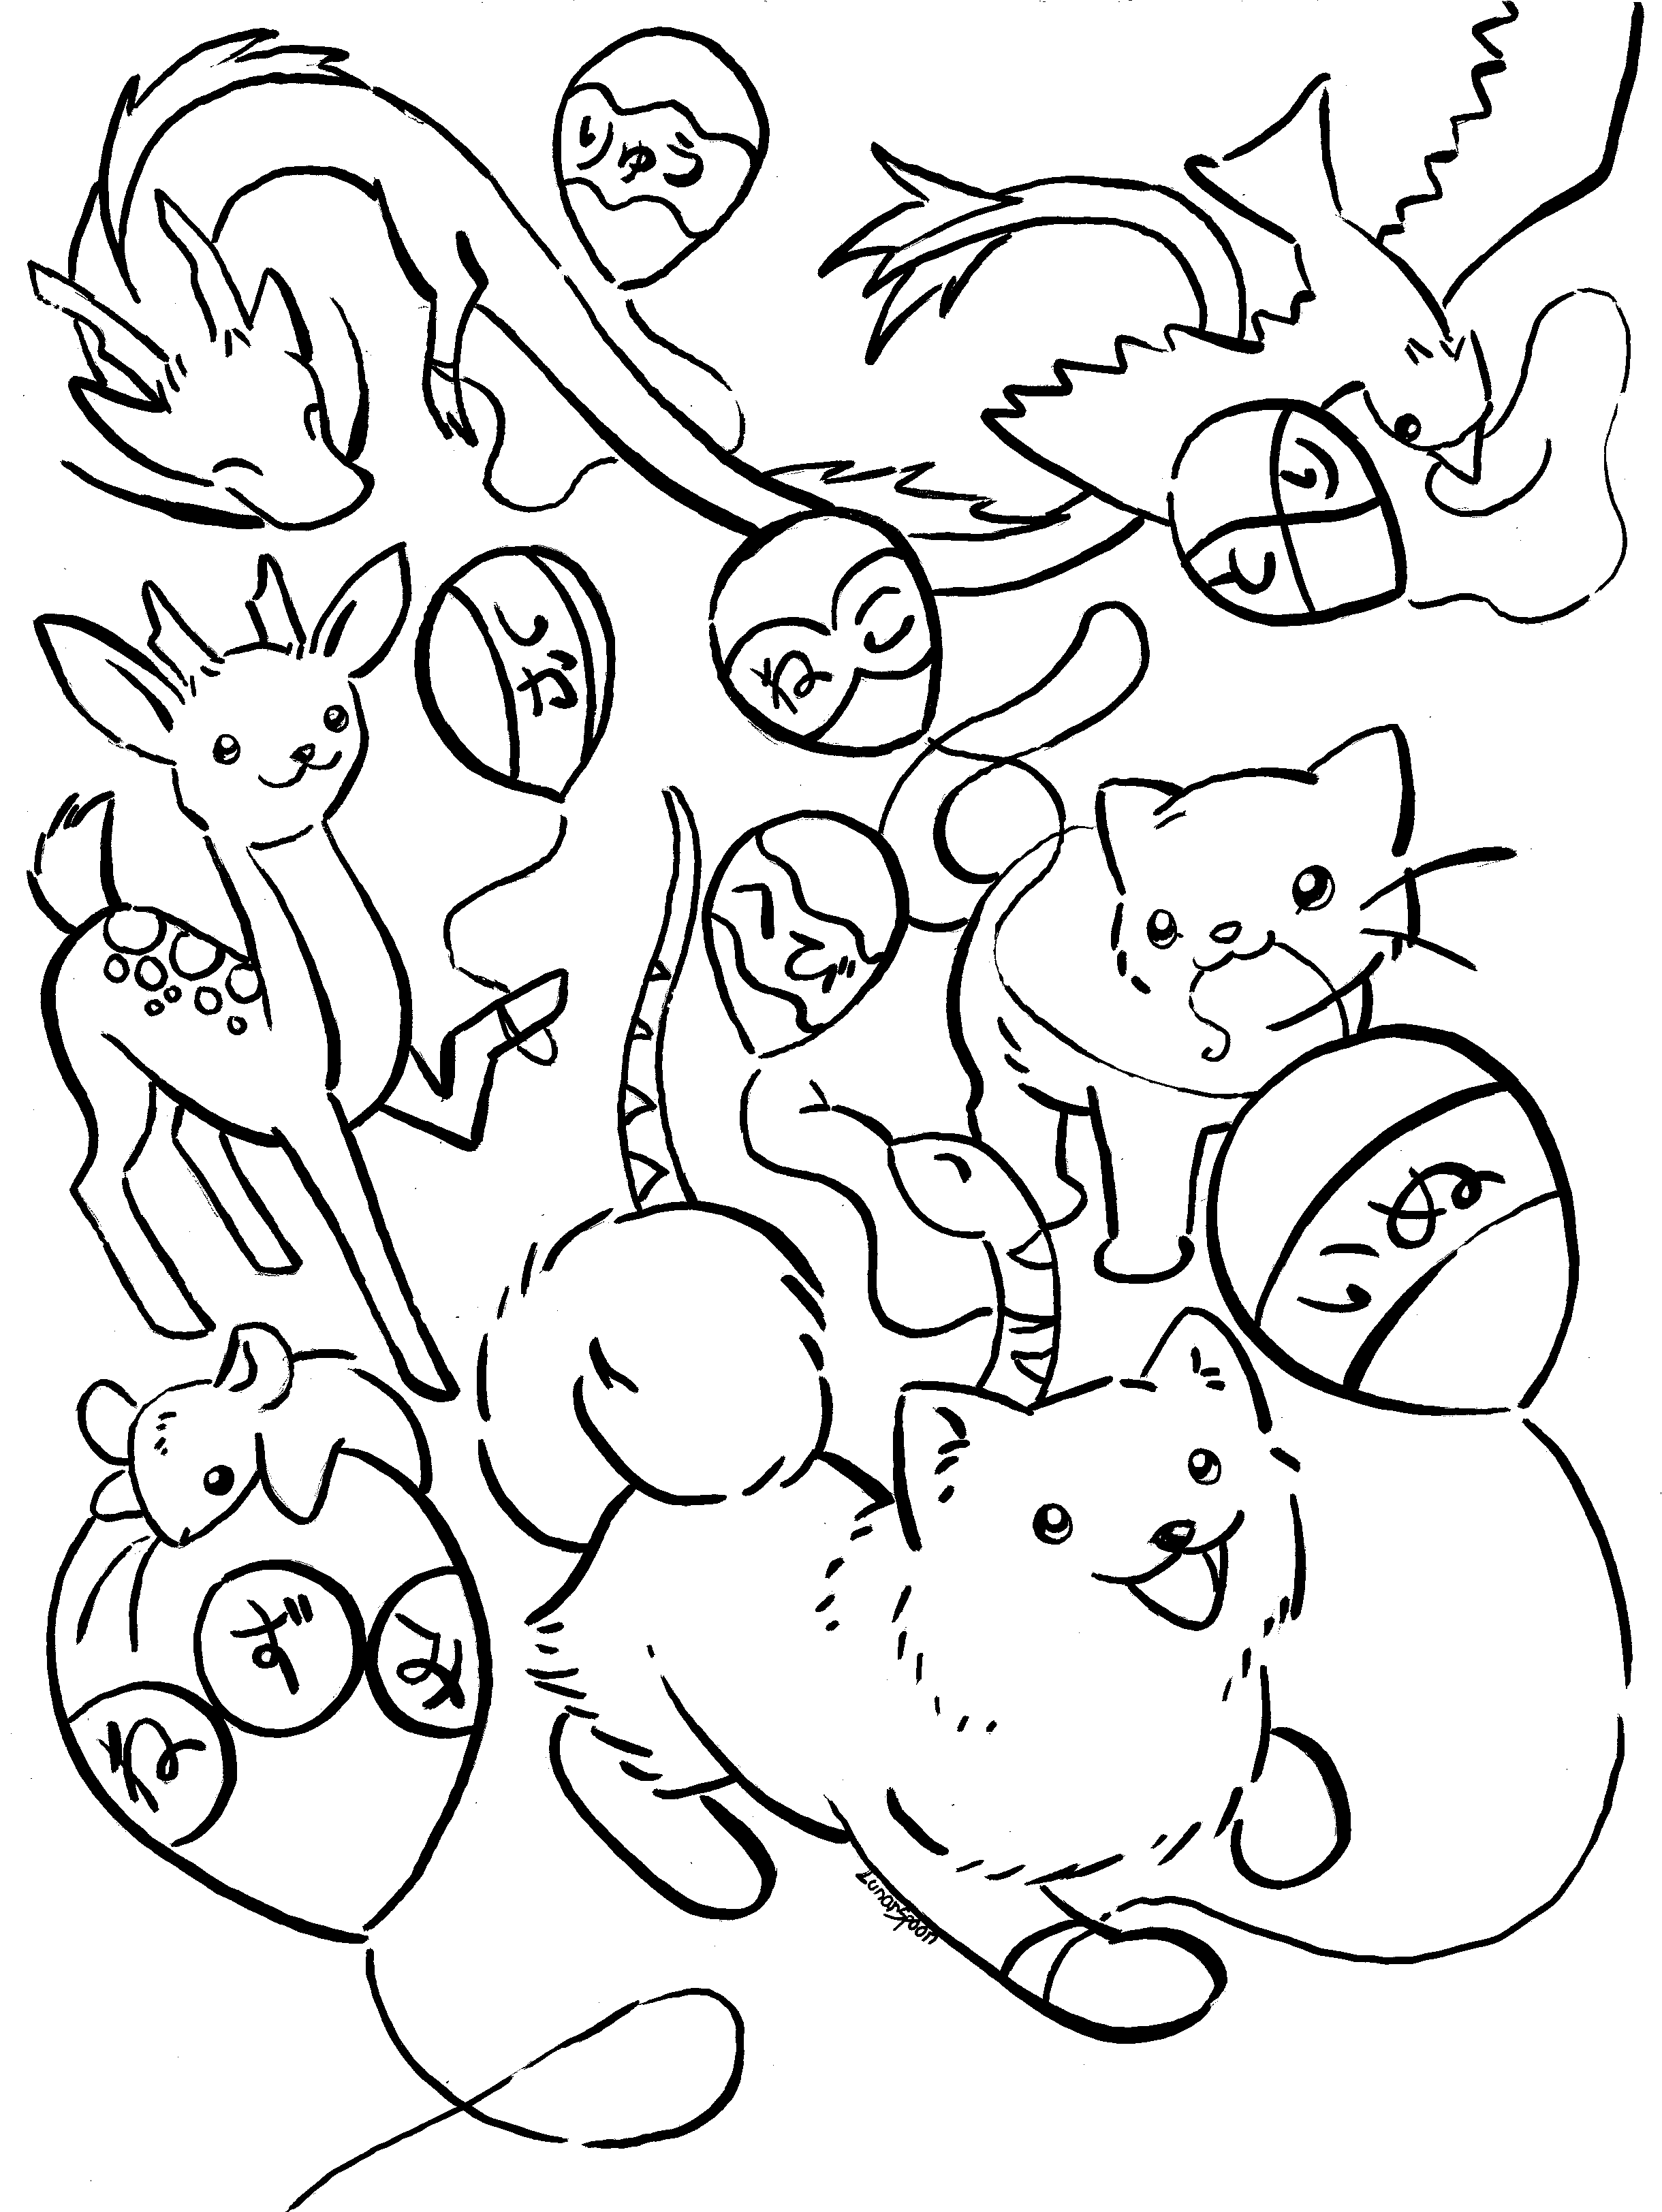 Japanese Animals Coloring Page Lunarspoon Deviantart